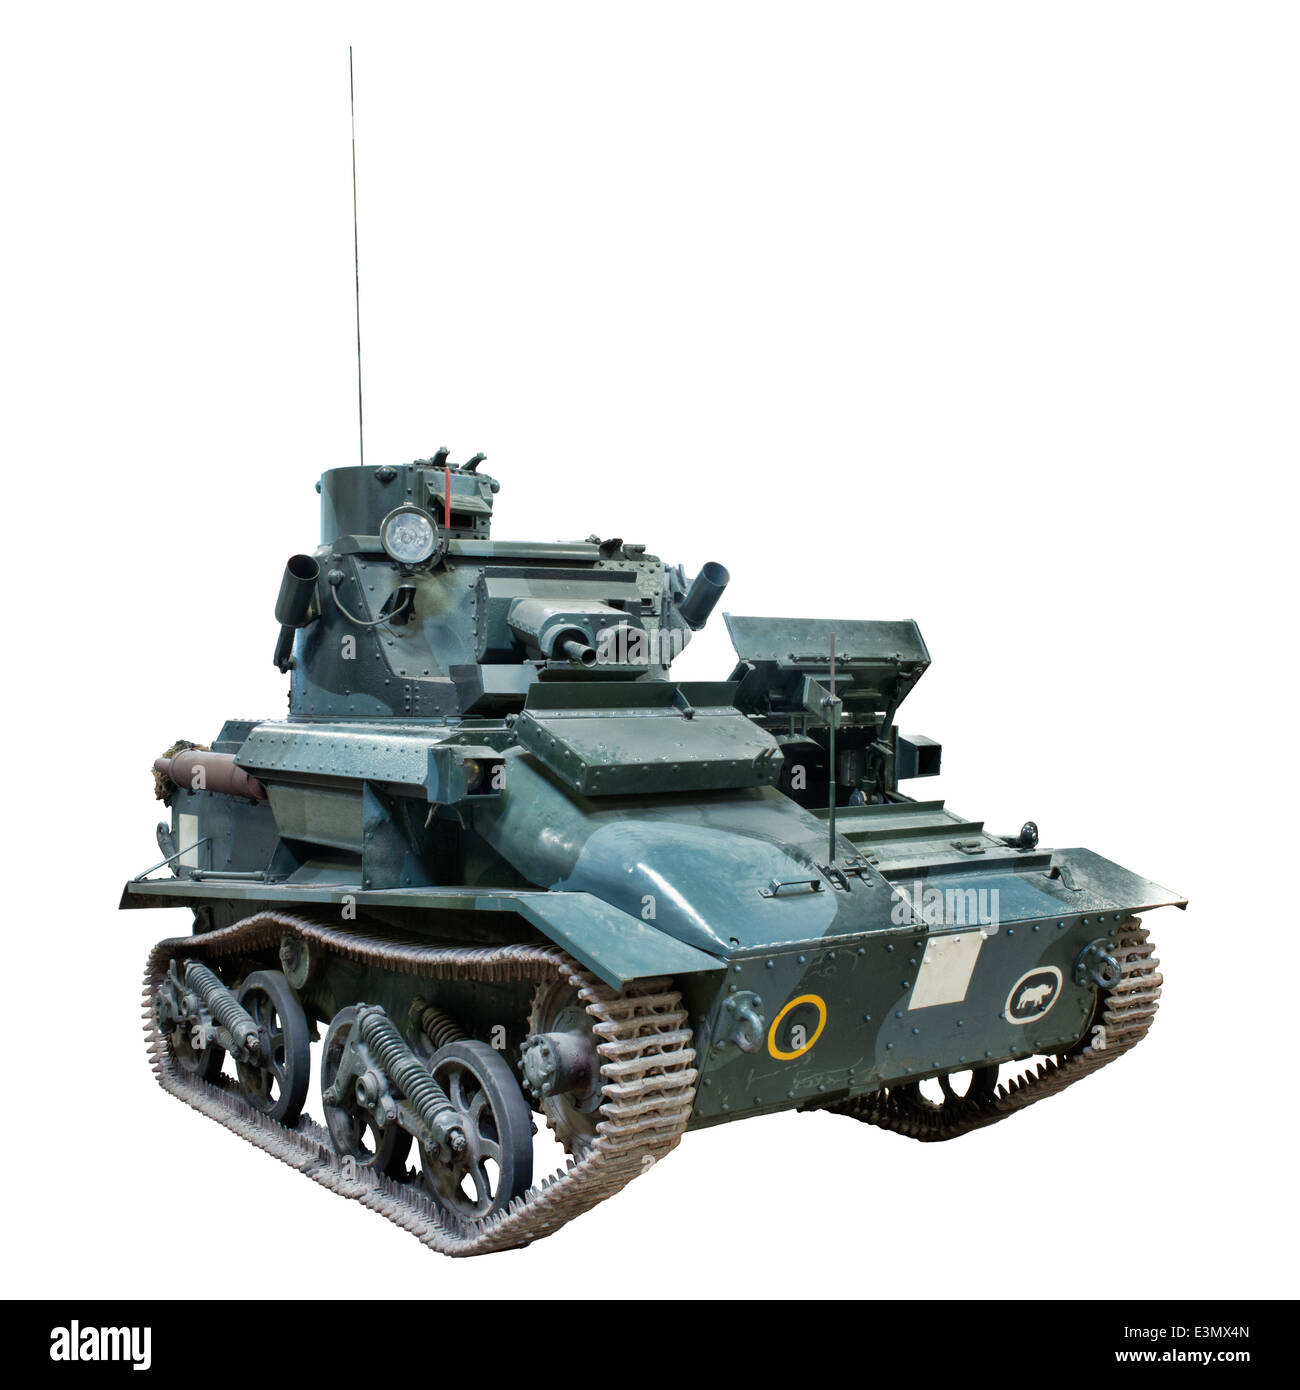 A Cut out of a British Army Vickers - Armstrong Mk IV light tank used during WW2 by allied forces Stock Photo